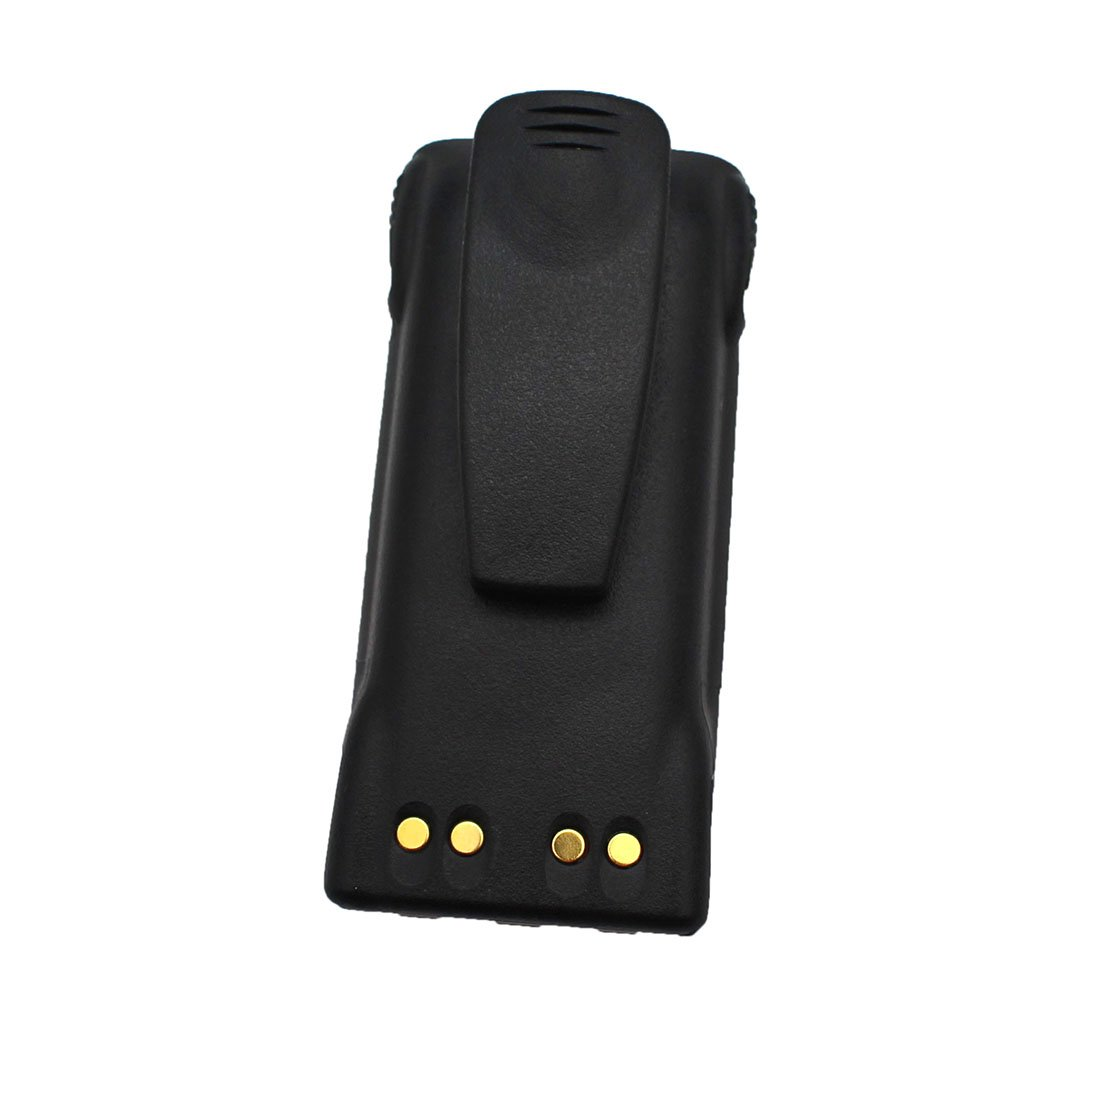 Belt Clip GoodQbuy 1500mAh NI-MH Replacement Battery for Motorola Radio HT750 HT1250 GP320 GP328 GP338 HNN9008 HNN9008A HNN9008AR HNN9008H HNN9009 HNN9012